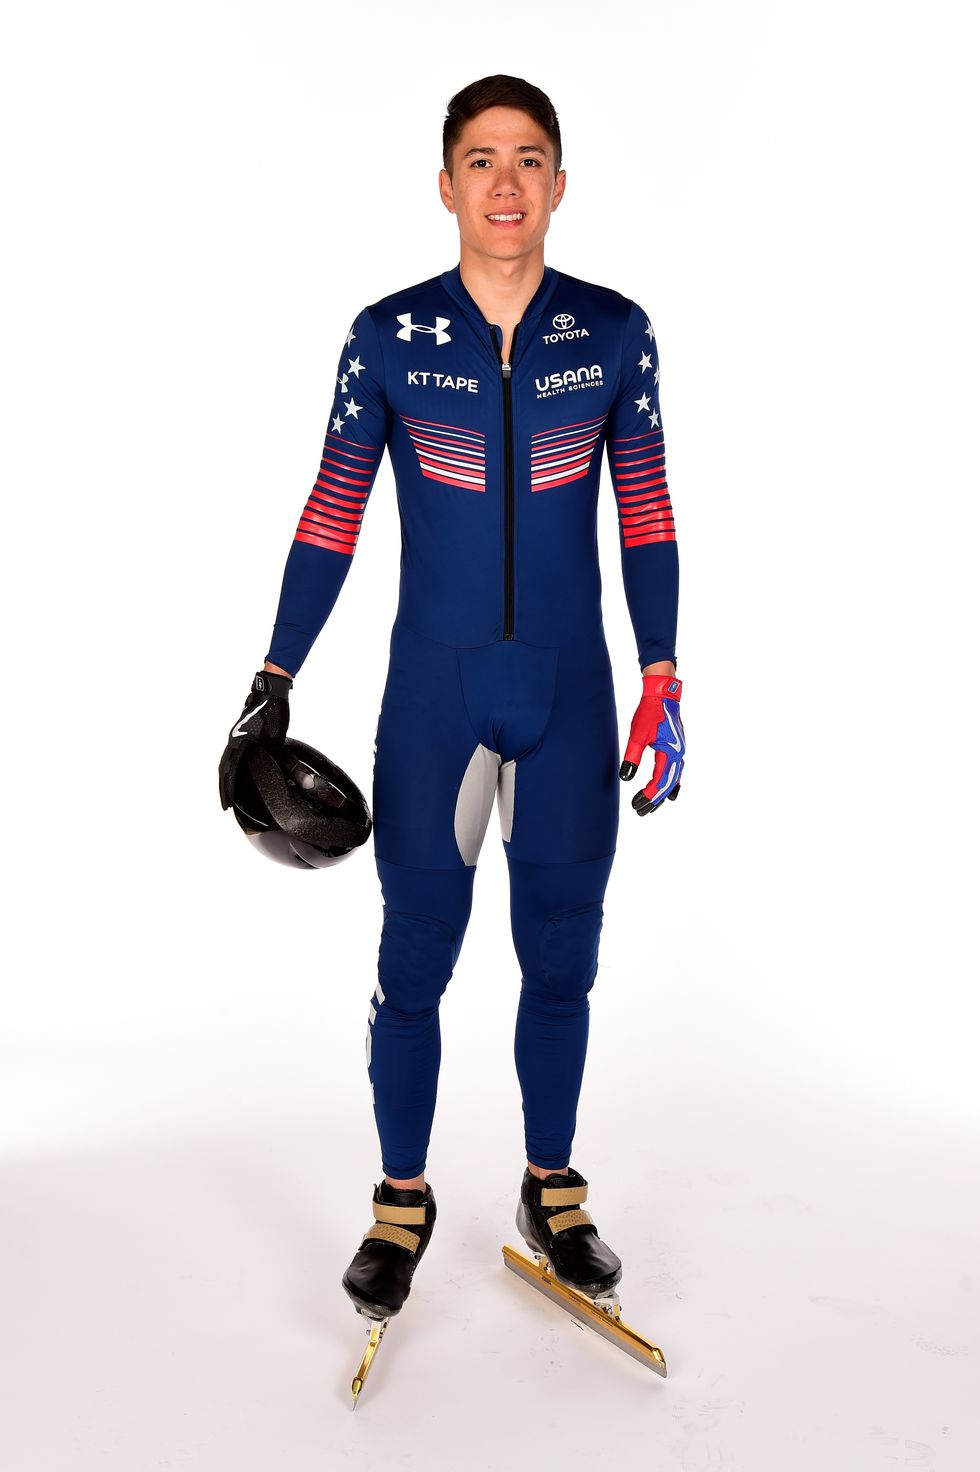 J.R. Celski, USA The speedskater's Team USA portrait ahead of the PyeongChang Games.